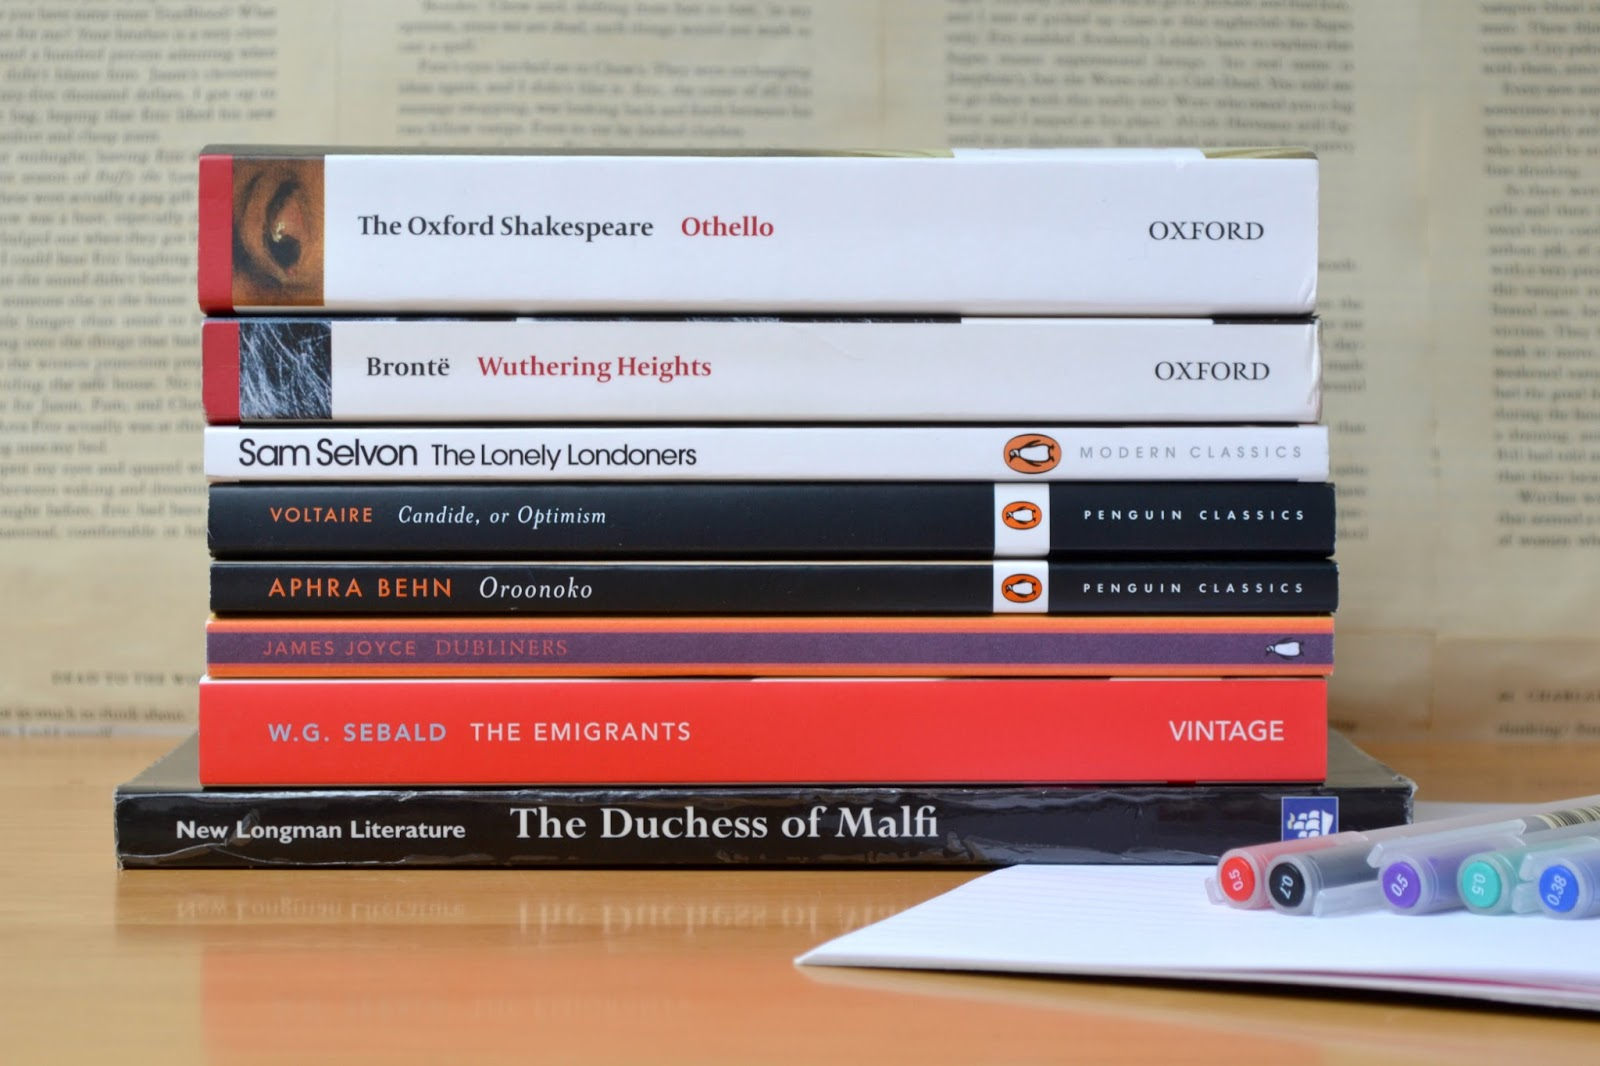 treatment of villainy in hamlet and duchess of malfi essay It cannot be said that i have endorsed every critical essay reprinted, as my  editor's notes  ing plays, the white devil and the duchess of malfi russell  fraser.